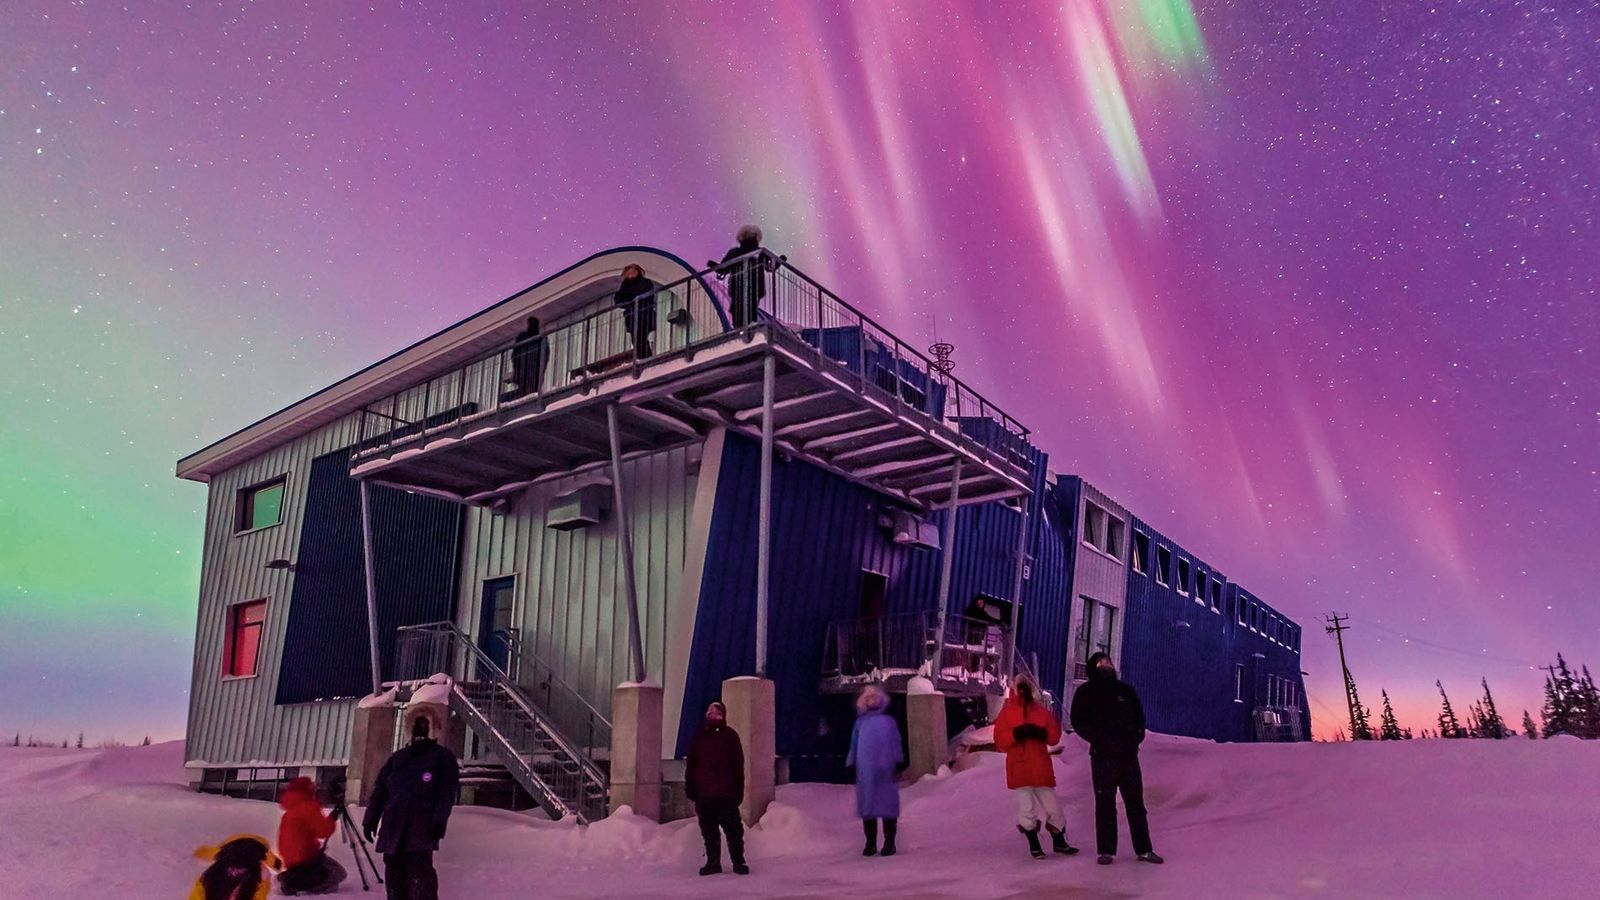 A spectacular Northern Lights display at the Churchill Northern Studies Centre